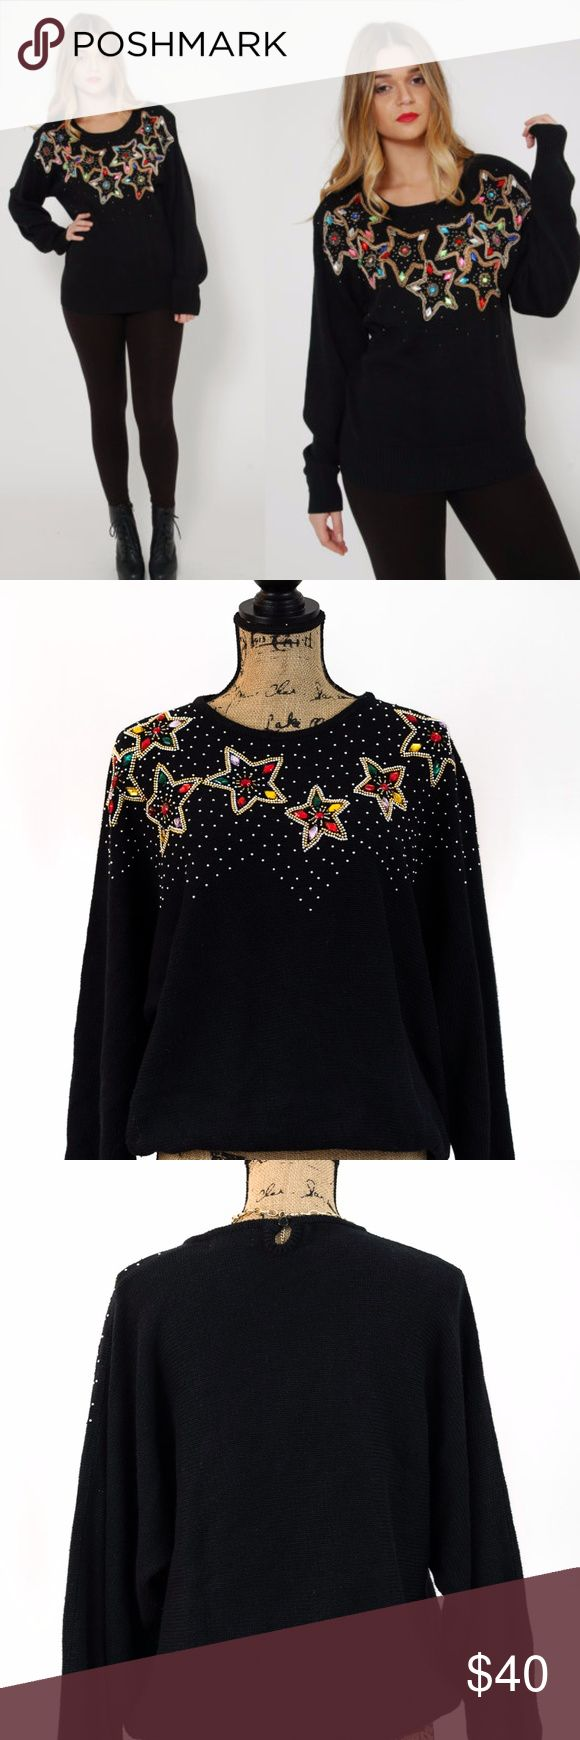 """80's STAR Rhinestone Sweater Ugly Christmas Sparkle in your next office or family party!  Wear this black cotton blend knit sweater with long dolman sleeves, relaxed shoulders and oversized fit.  Filled with multi colored rhinestones that form stars, you surely be the center of attention.  ✅ Pit to Pit: 26"""" ✅ Length: 26"""" ✅ Condition: Excellent pre-owned condition.   Any reasonable offer will be considered. Crystal Sportswear Sweaters Crew & Scoop Necks"""